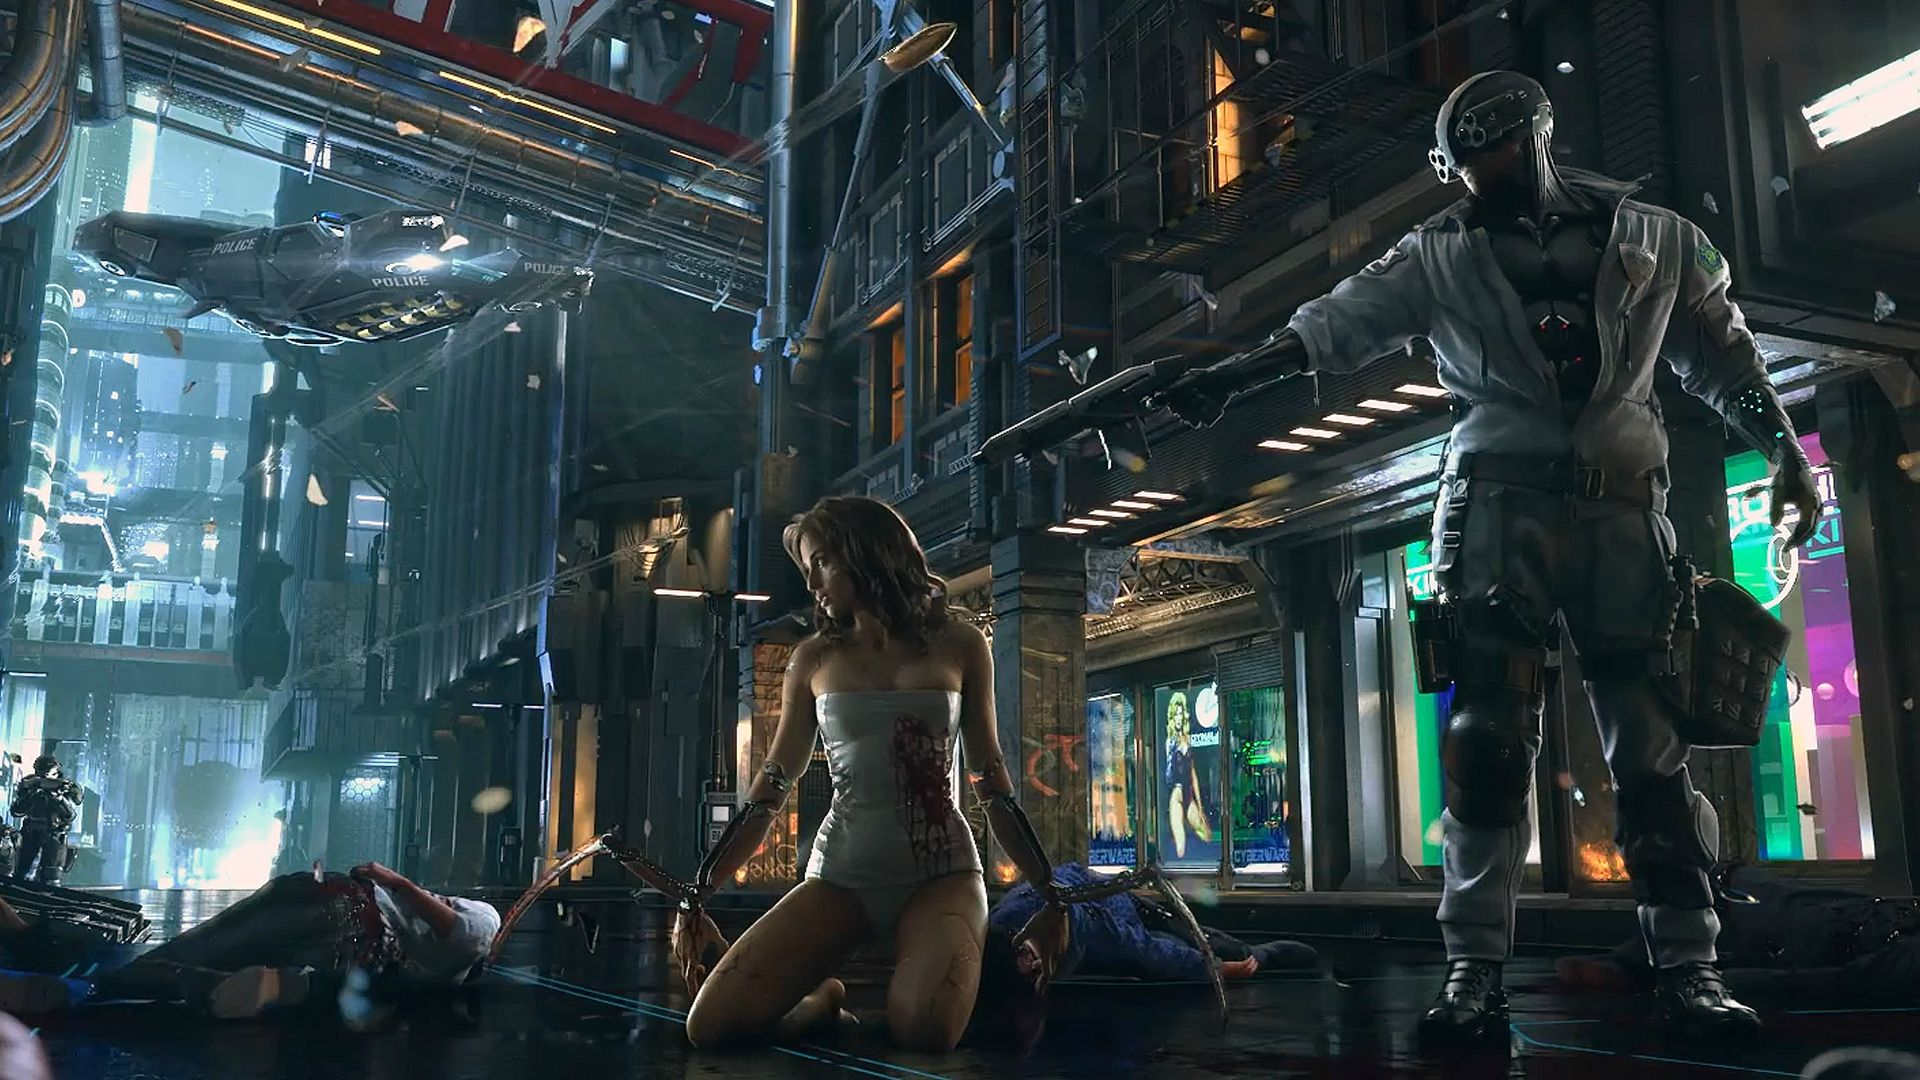 All nude cyber gameplay fucking movie